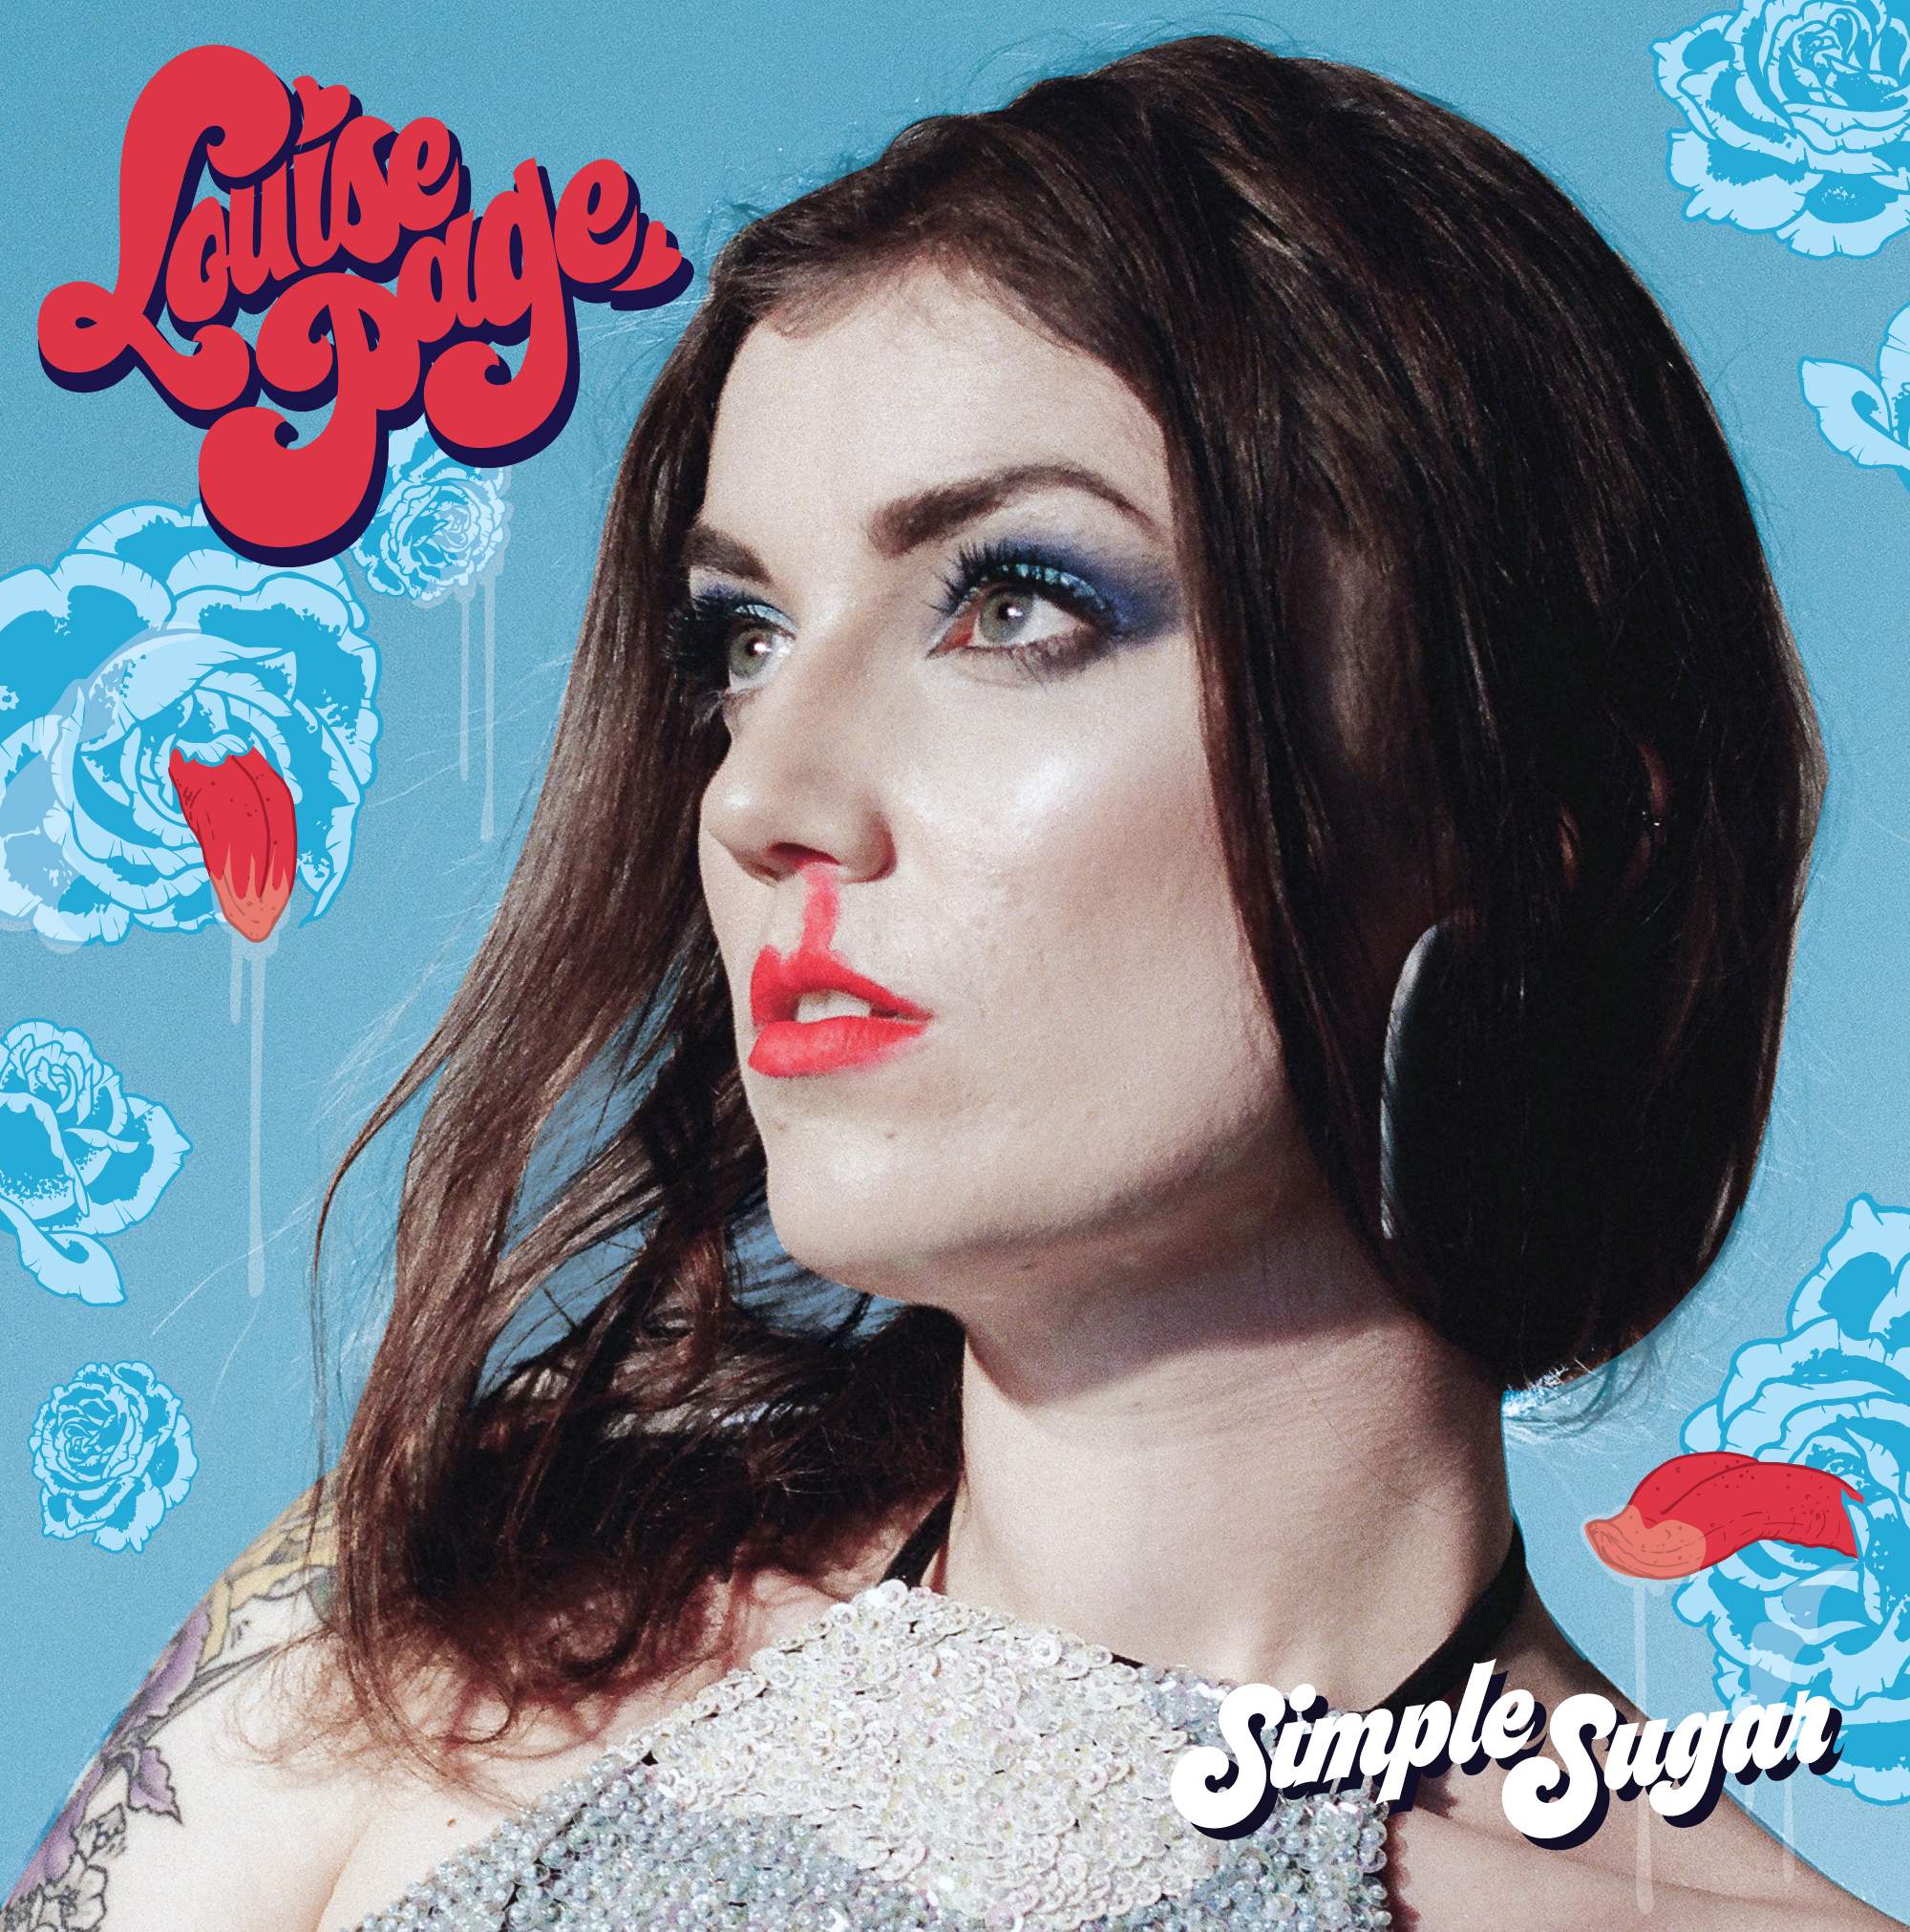 louise-page_album-cover-web.png